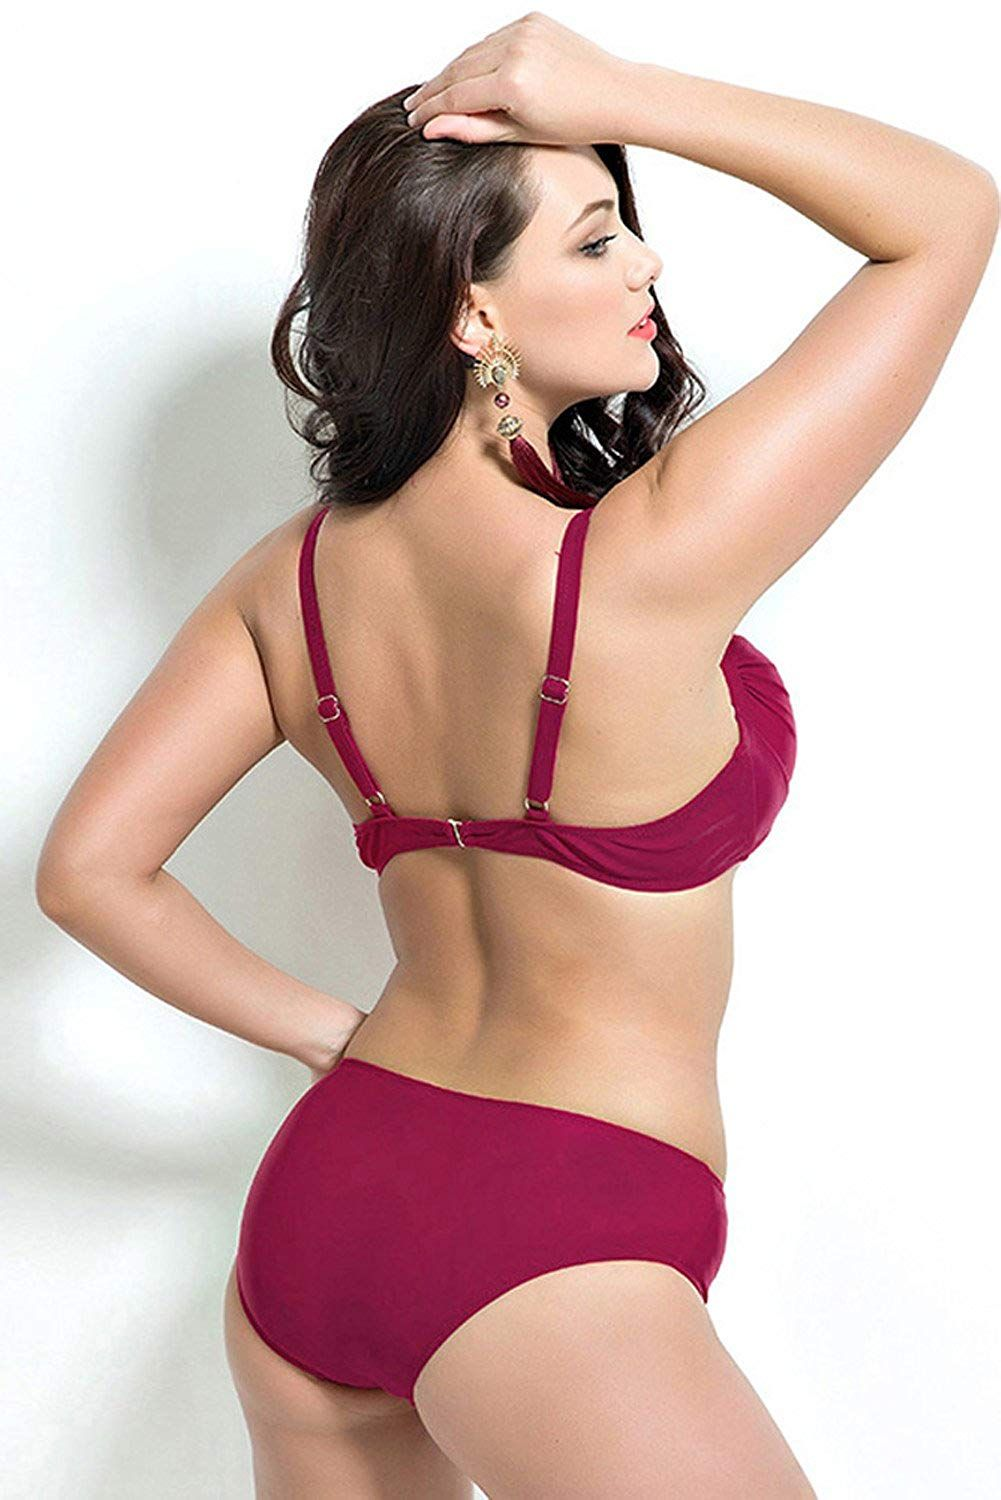 6820e67102 DAILEE Sexy Womens Bikinis Plus Size Swimwear Vintage Swimsuits Bikini Set  for Busty Women ** See this great product. (This is an affiliate link) # ...